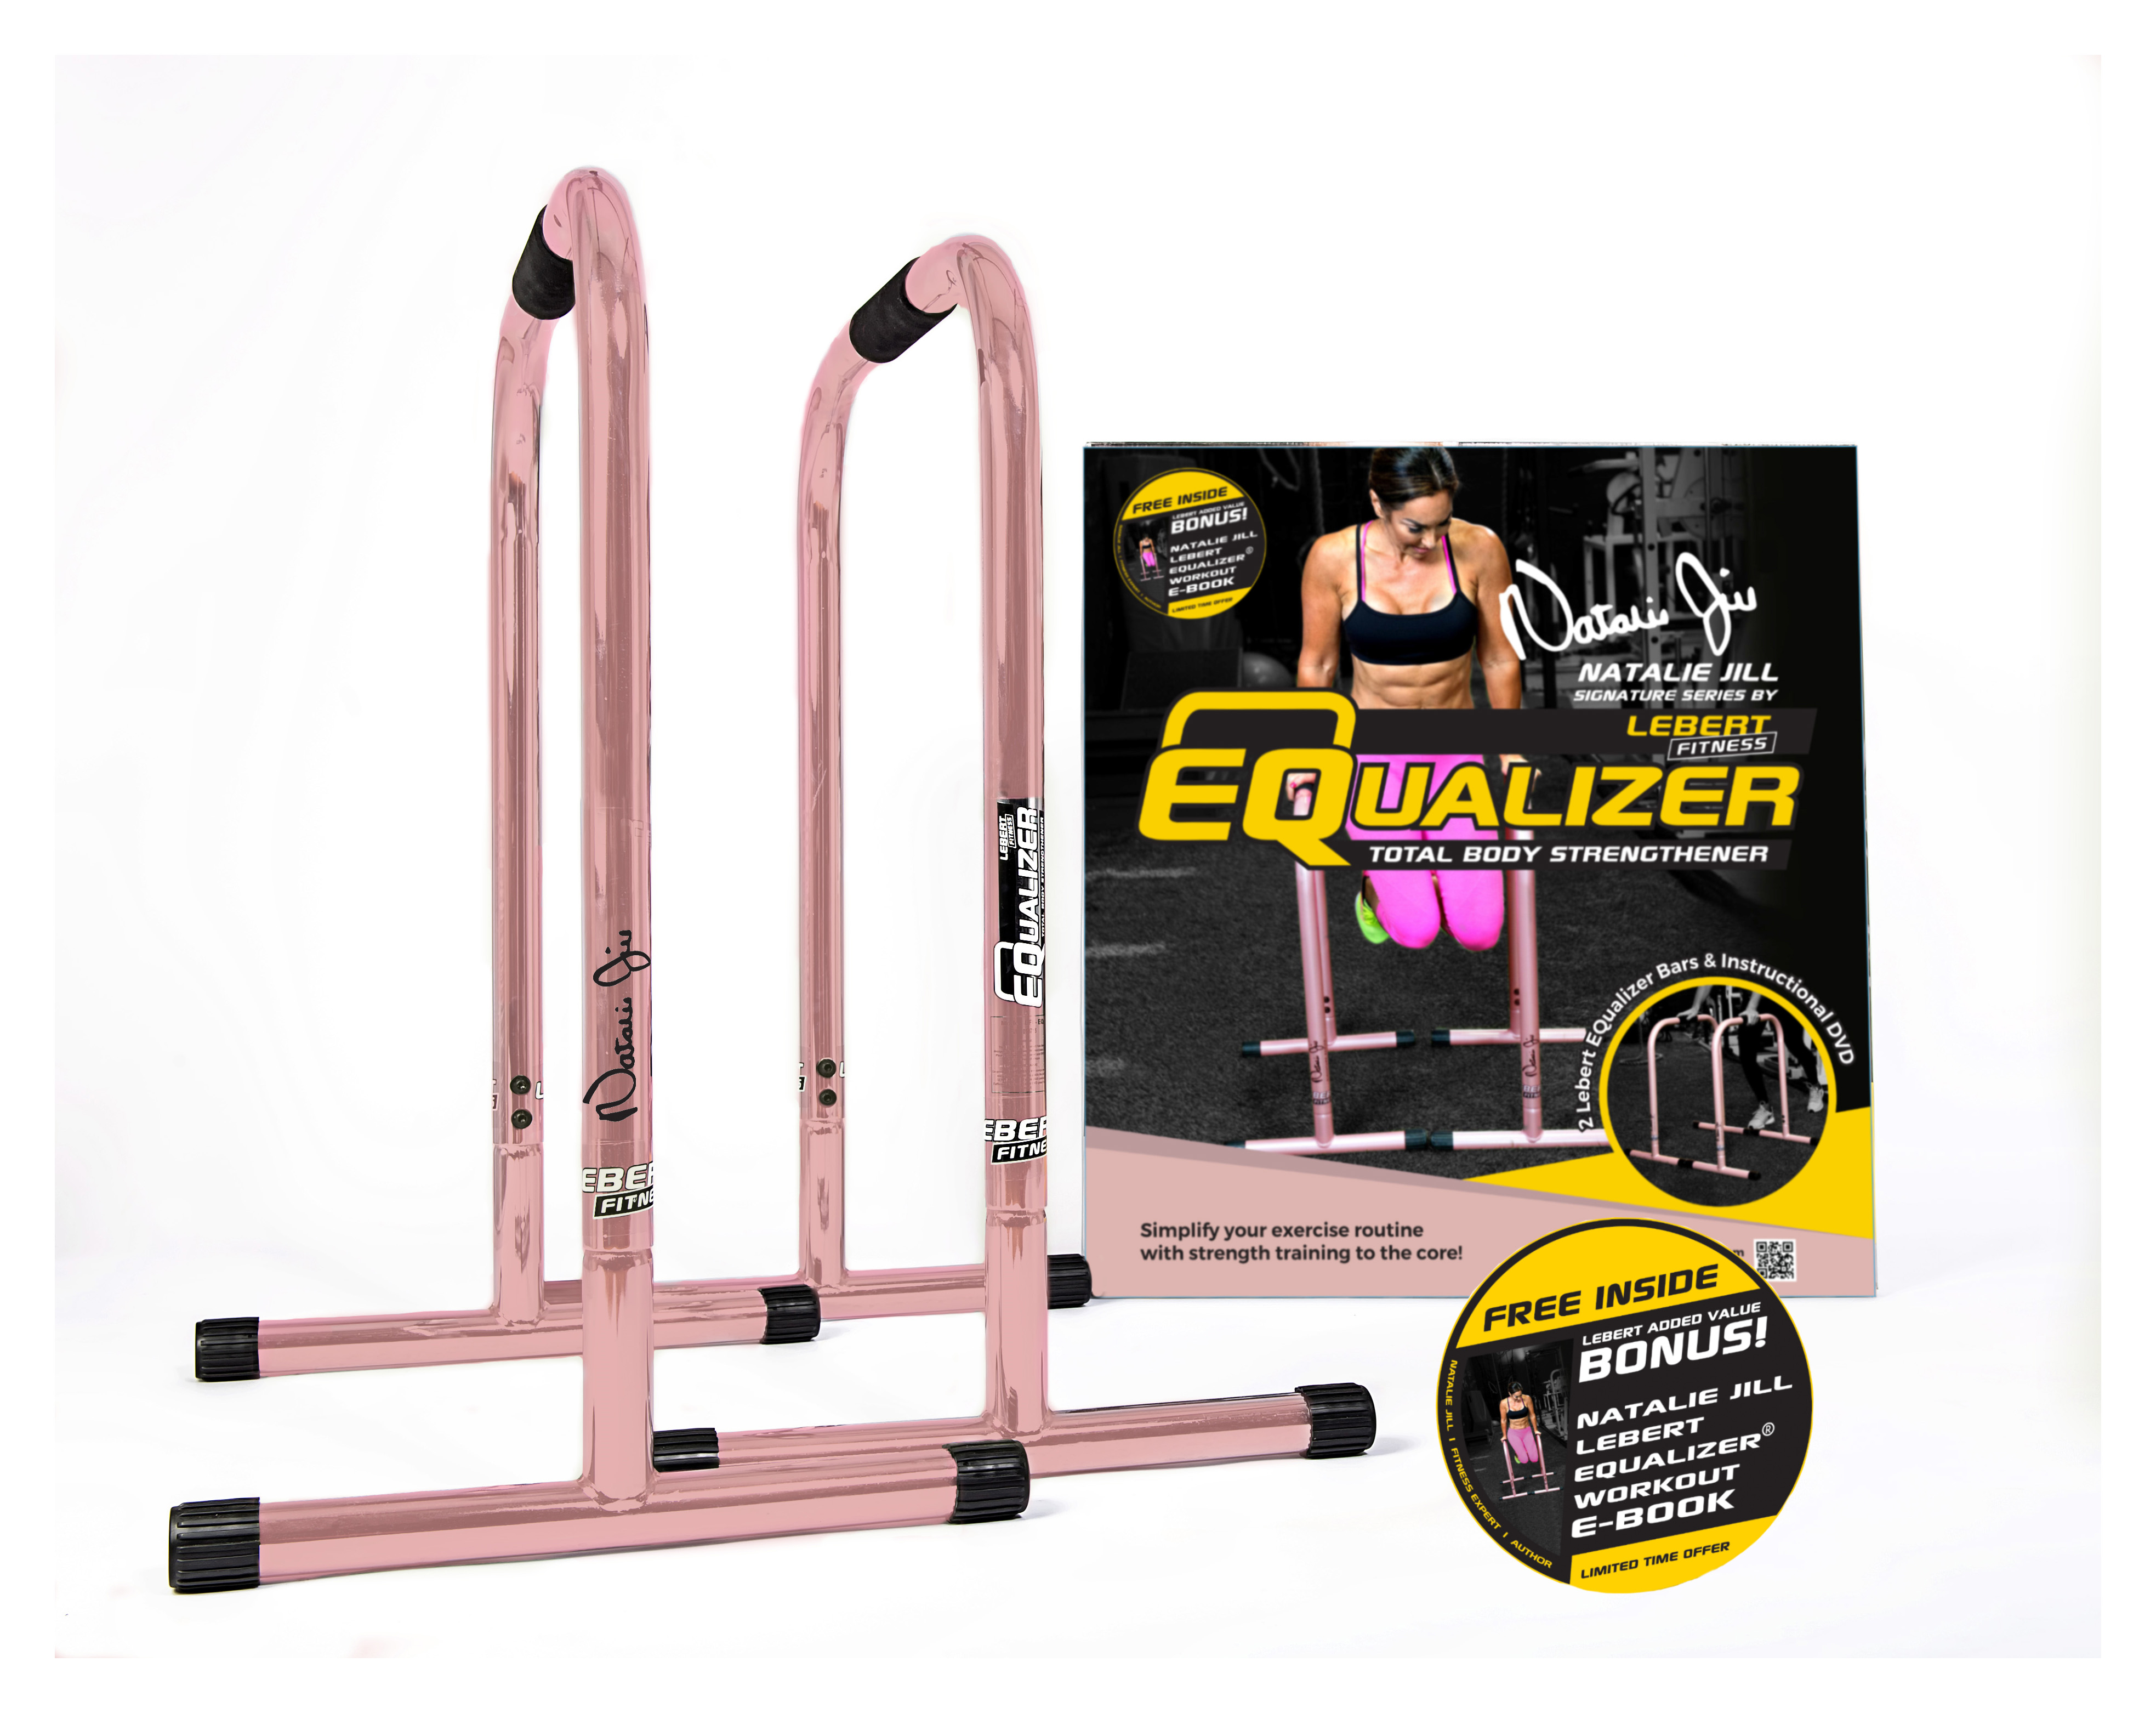 Lebert  Fitness Equalizer - pink gold  will make you satisfied